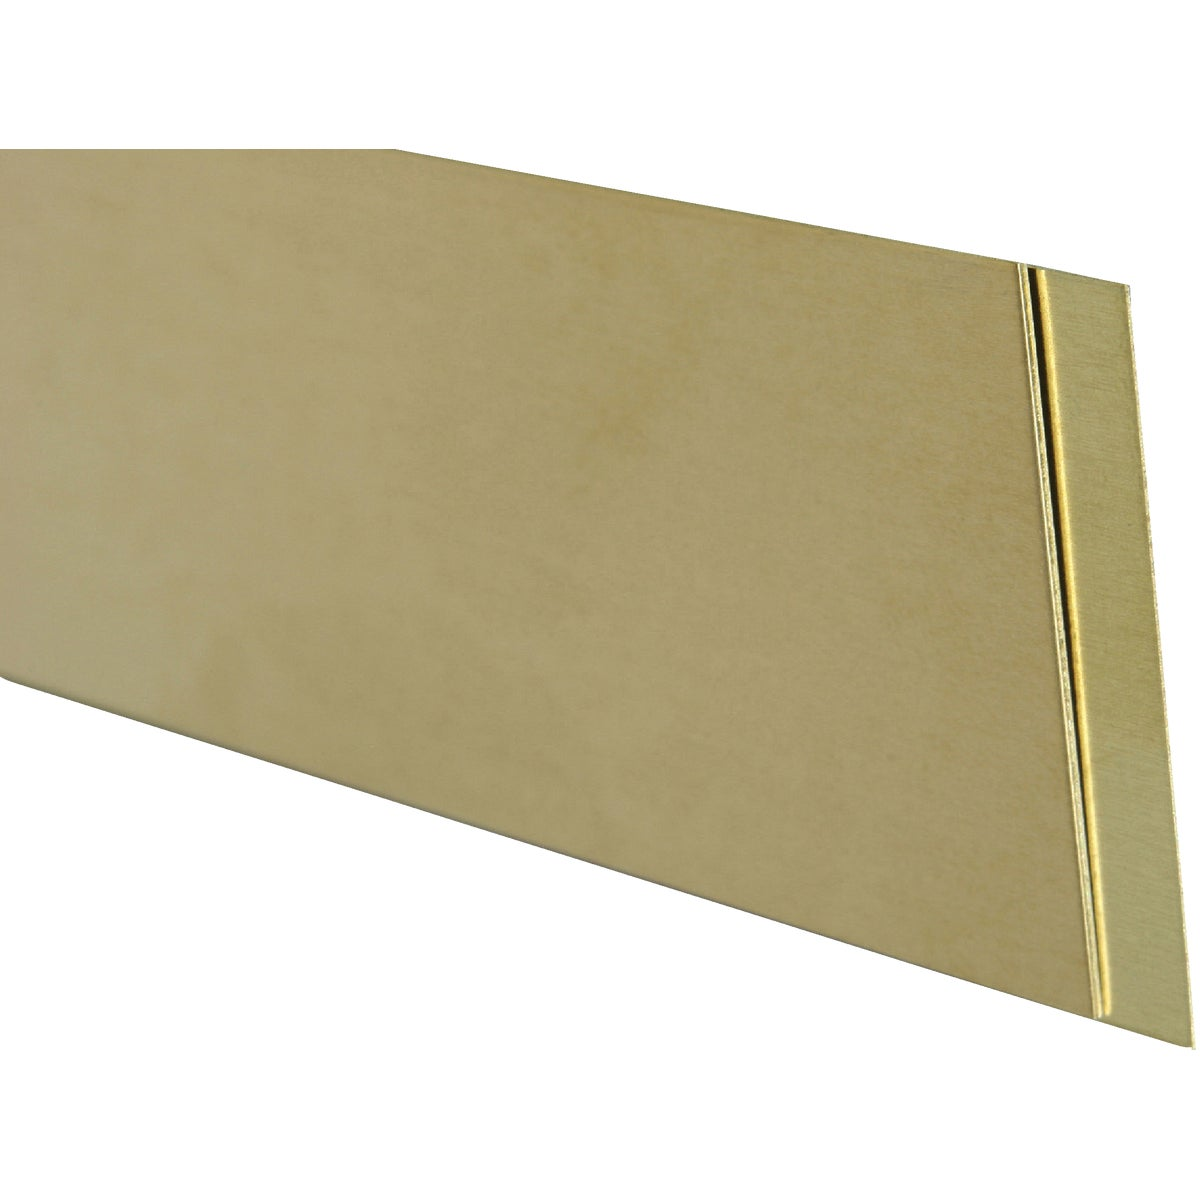 .093X2X12 BRASS STRIP - 8229 by K&s Precision Metals